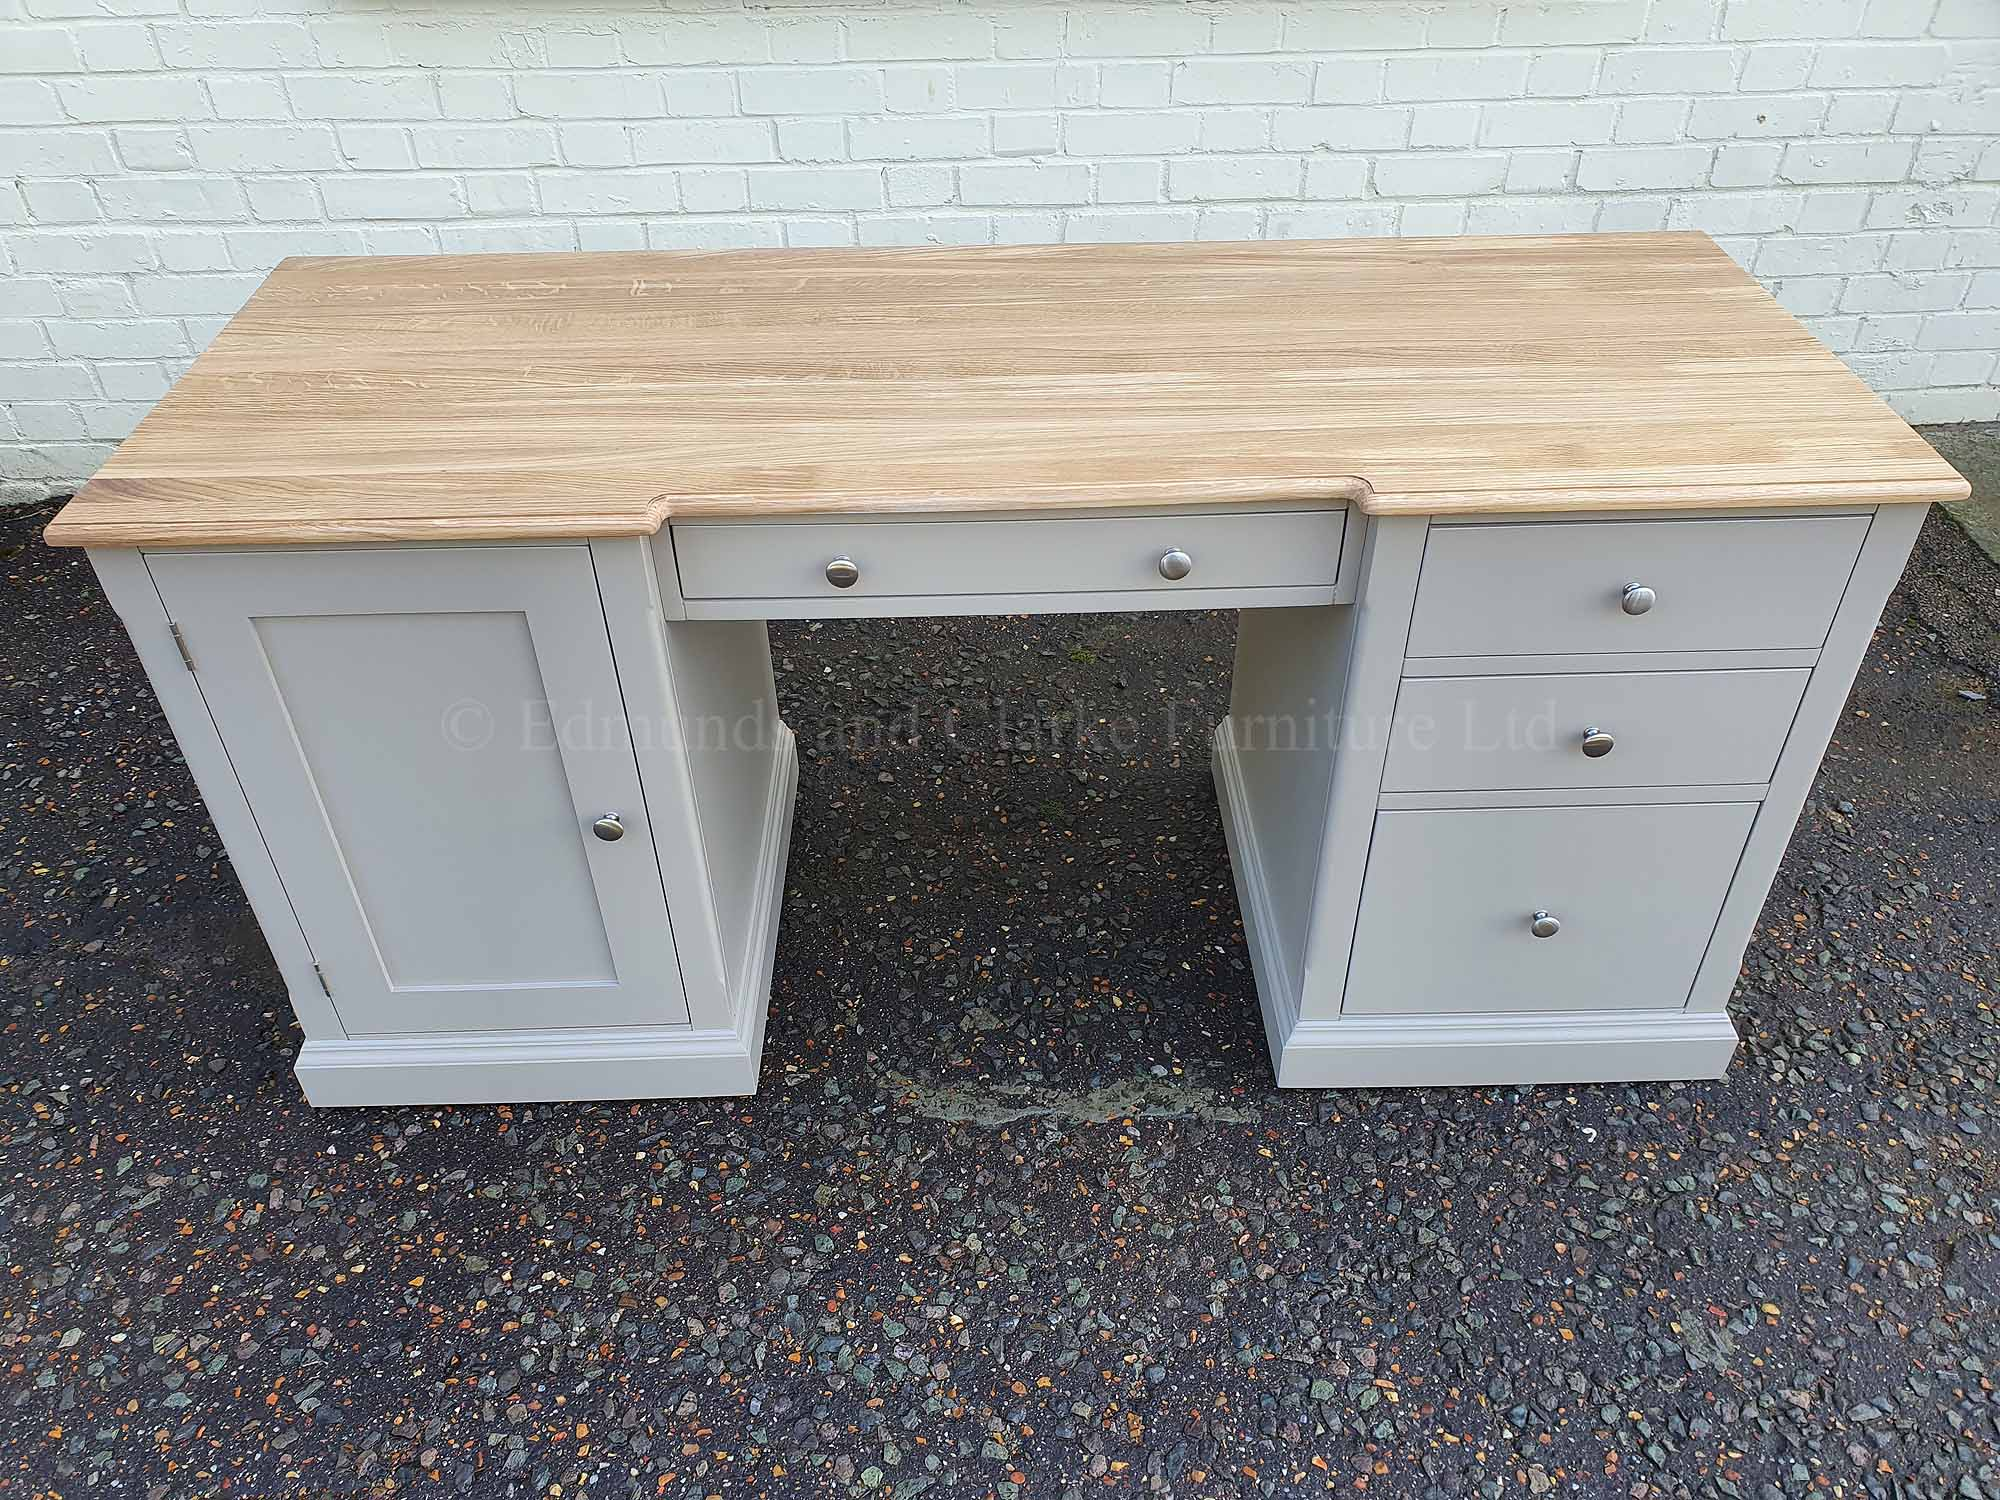 workstation desk with filing drawer and 3 useful drawers, cupboard on left, painted grey with oiled oak top